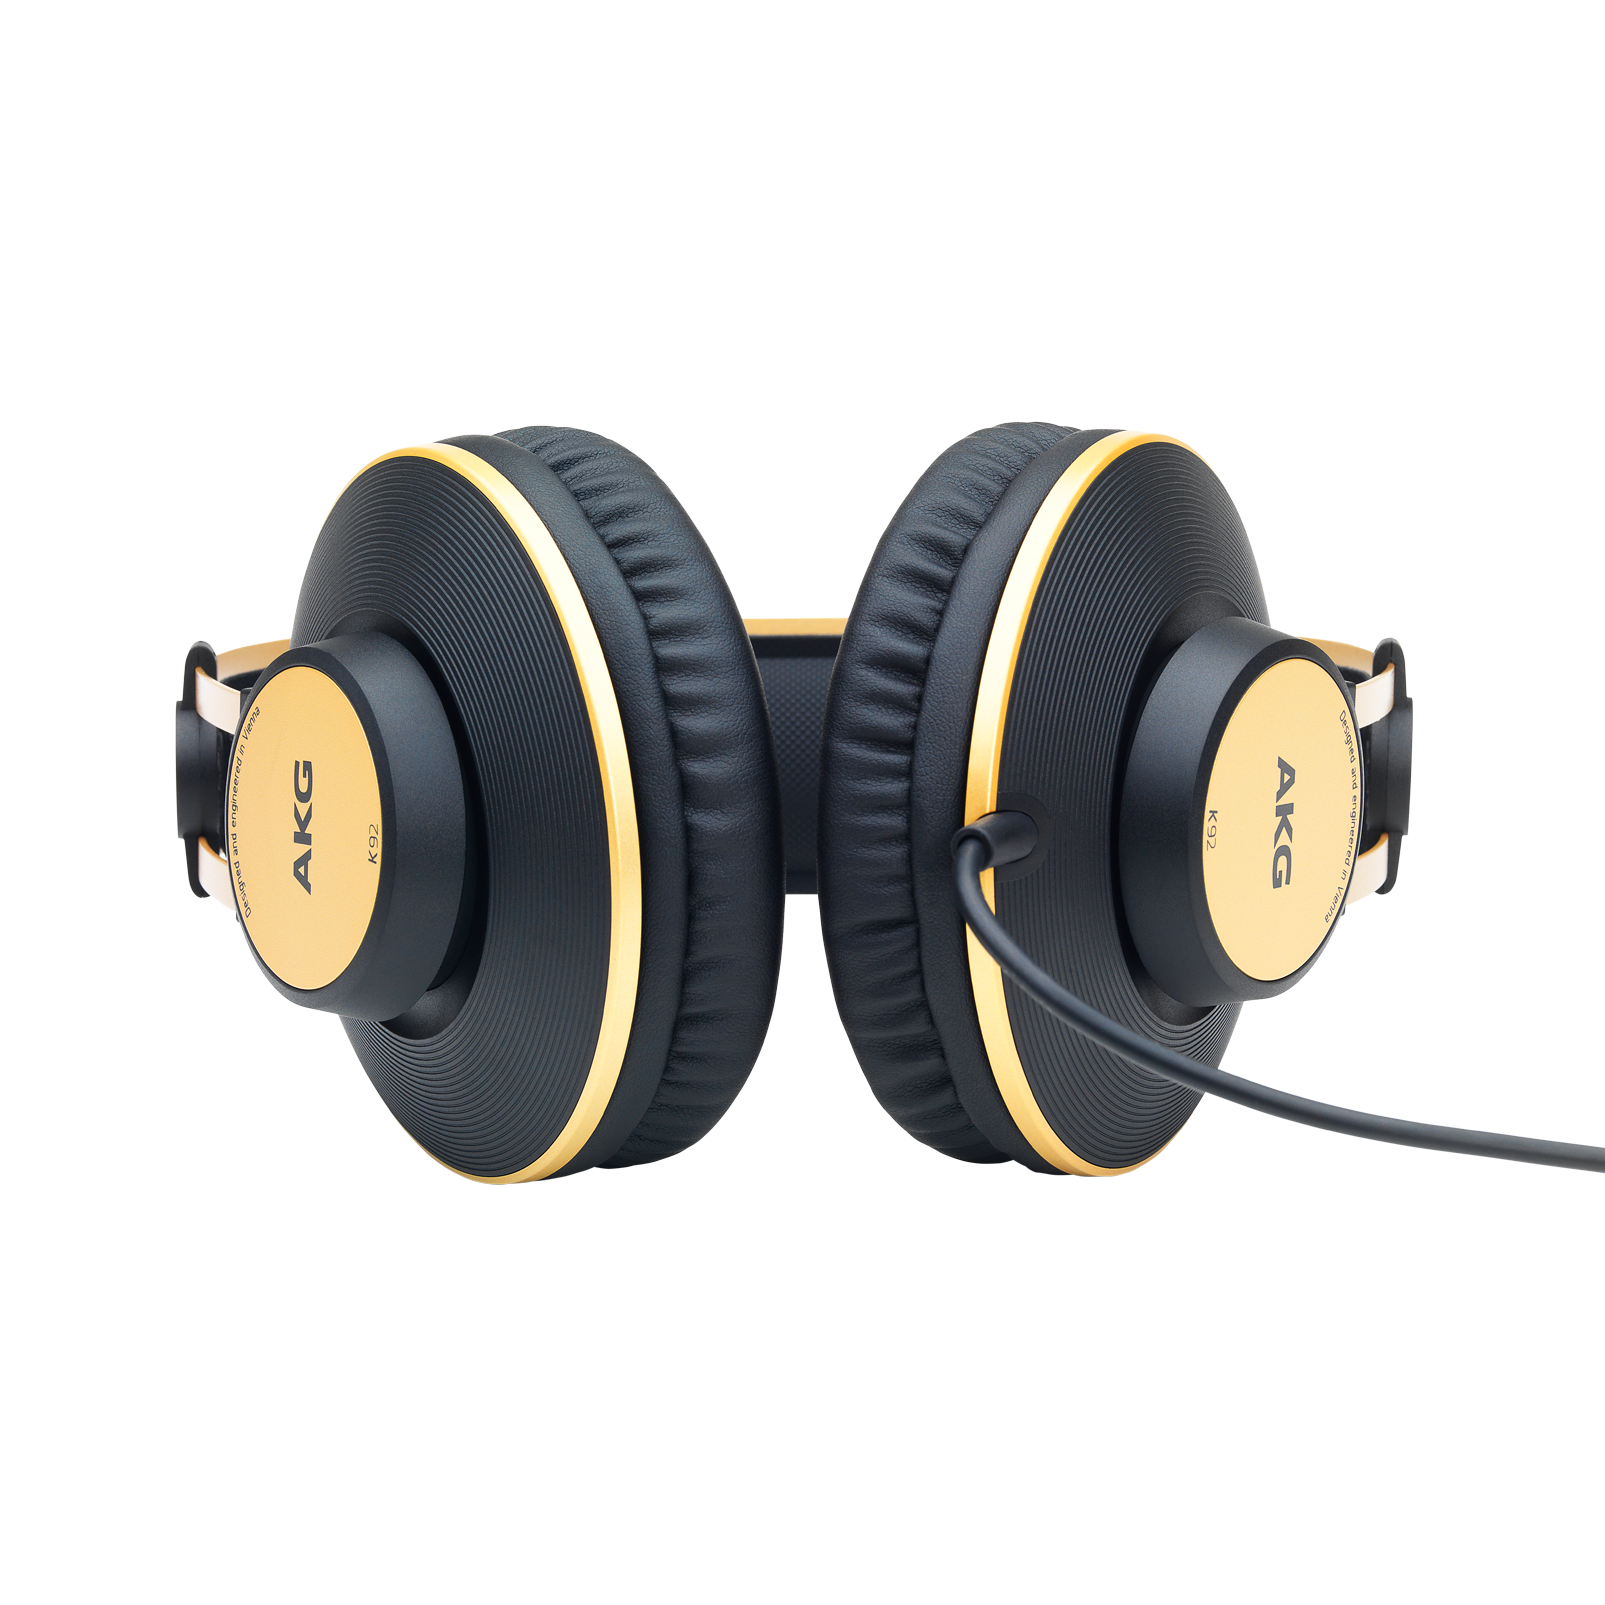 K92 - Black - Closed-back headphones - Detailshot 1